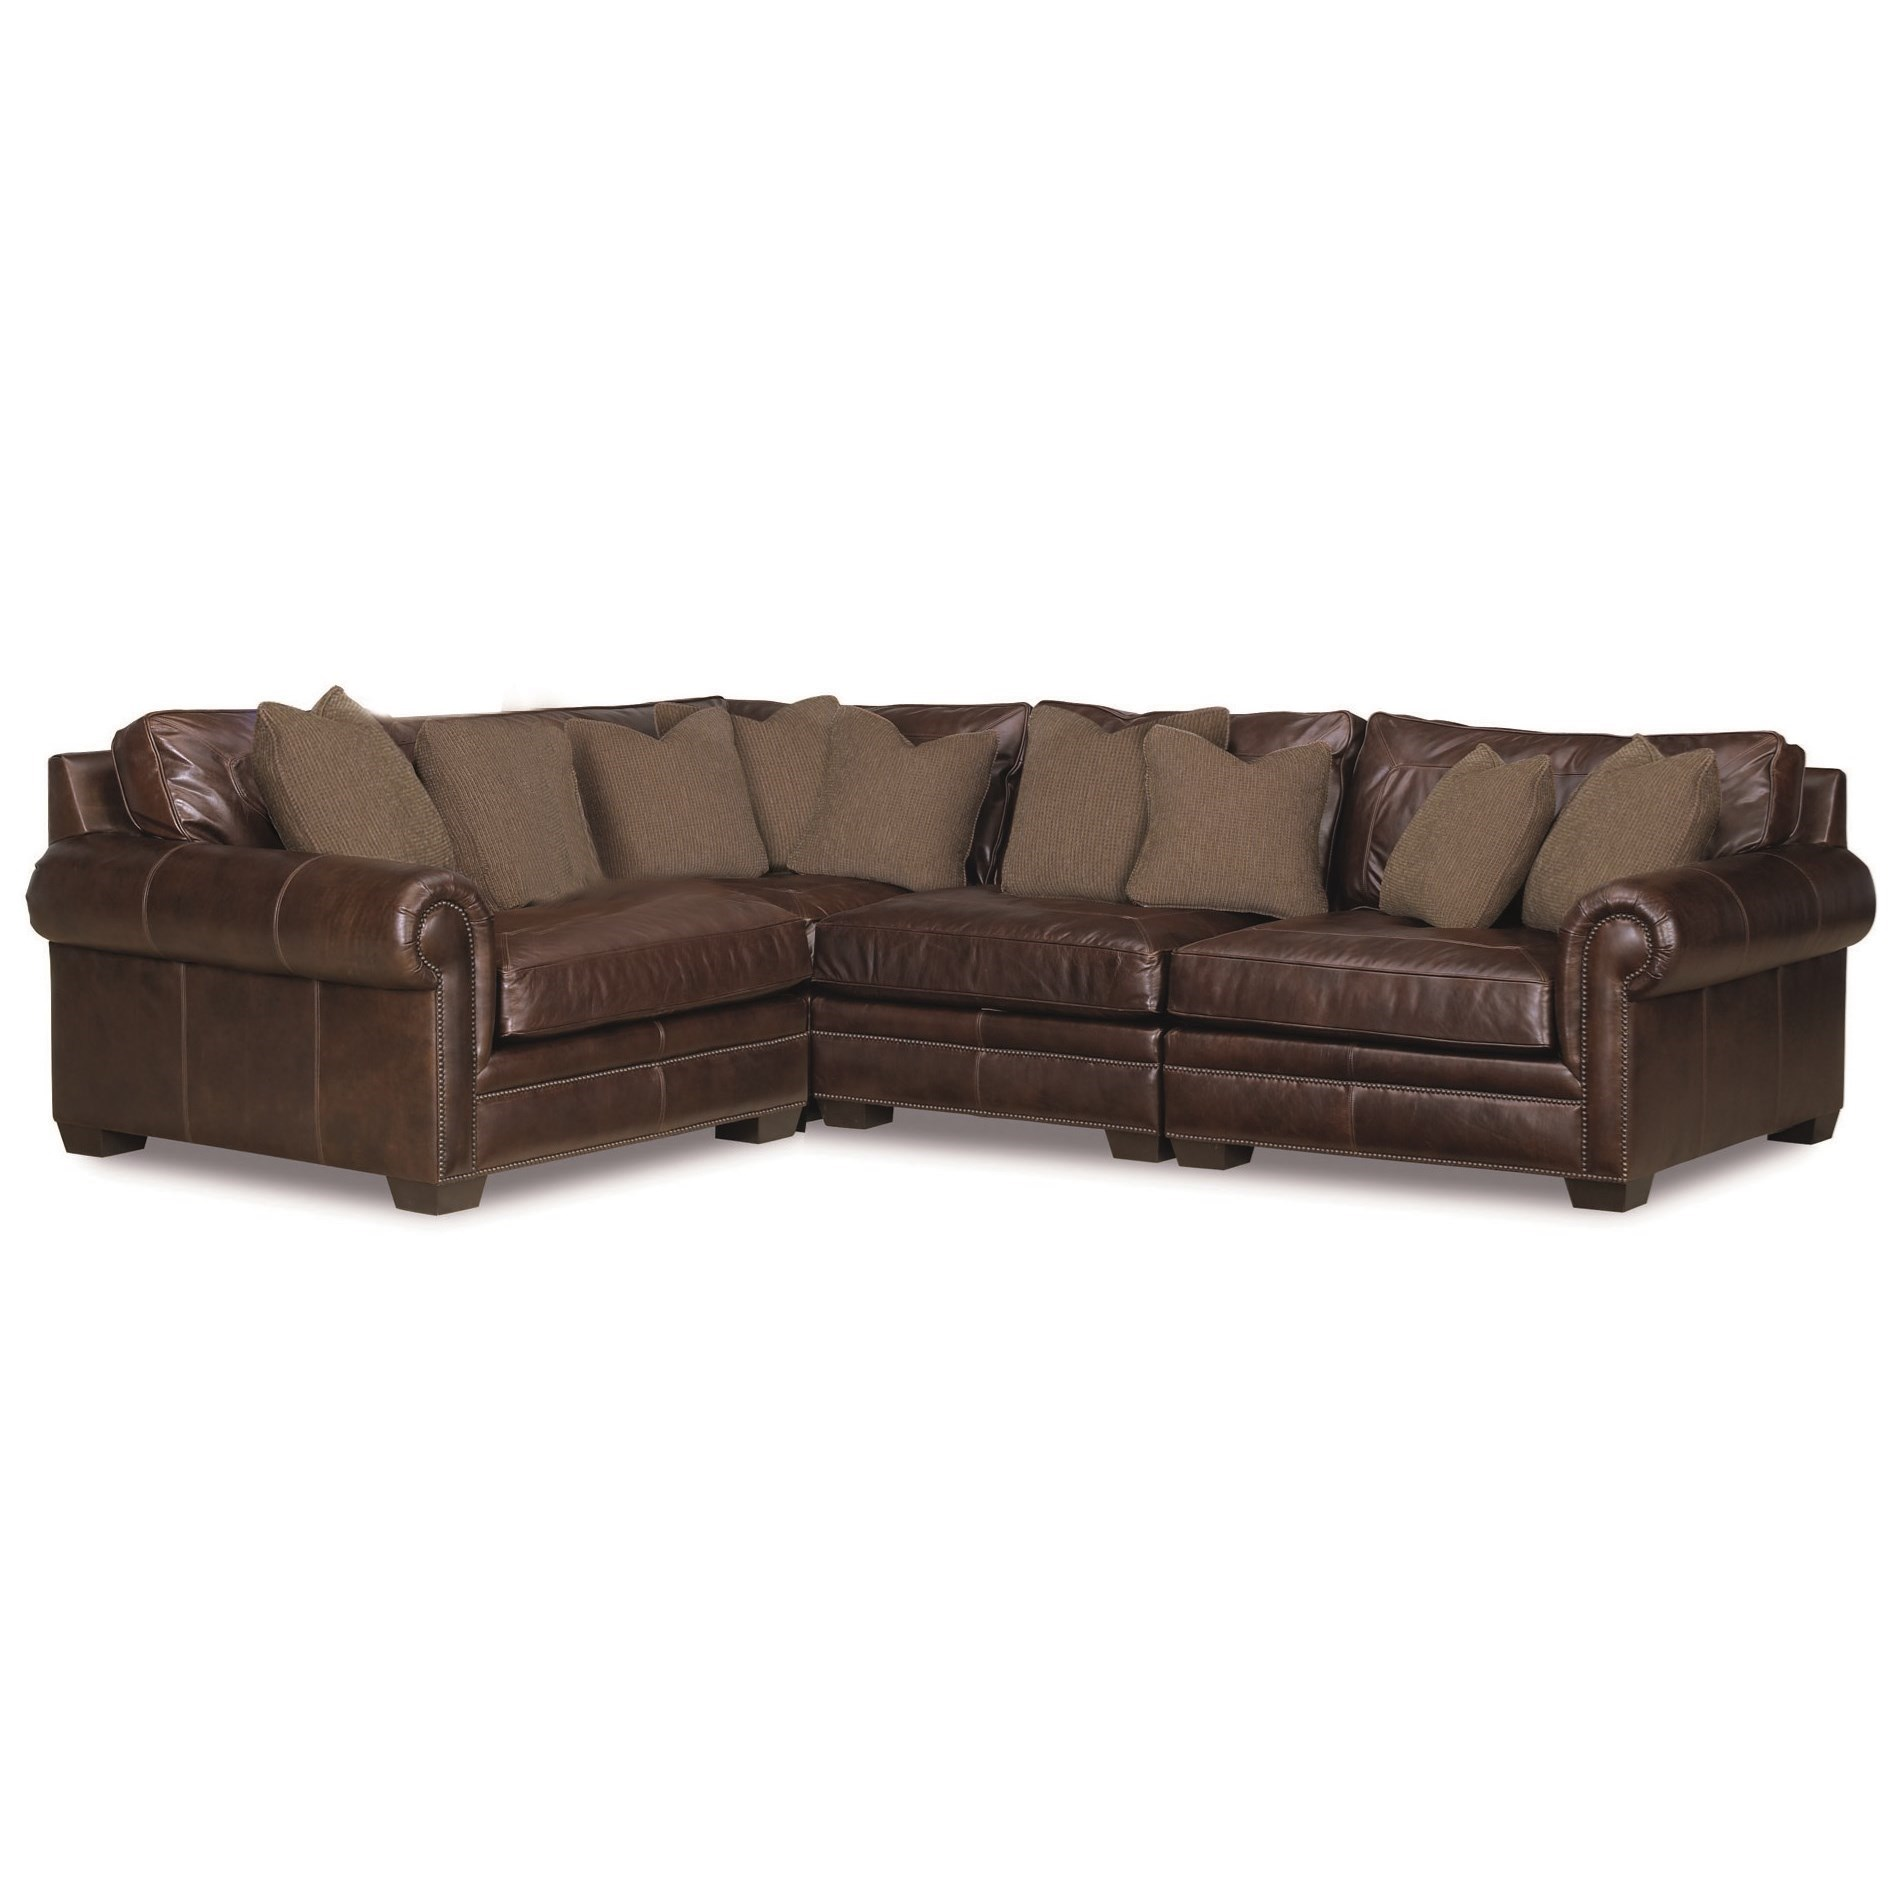 Bernhardt Grandview 4 Pc Sectional Sofa - Item Number: 7336L+7330L+7332L+7335L 229-022